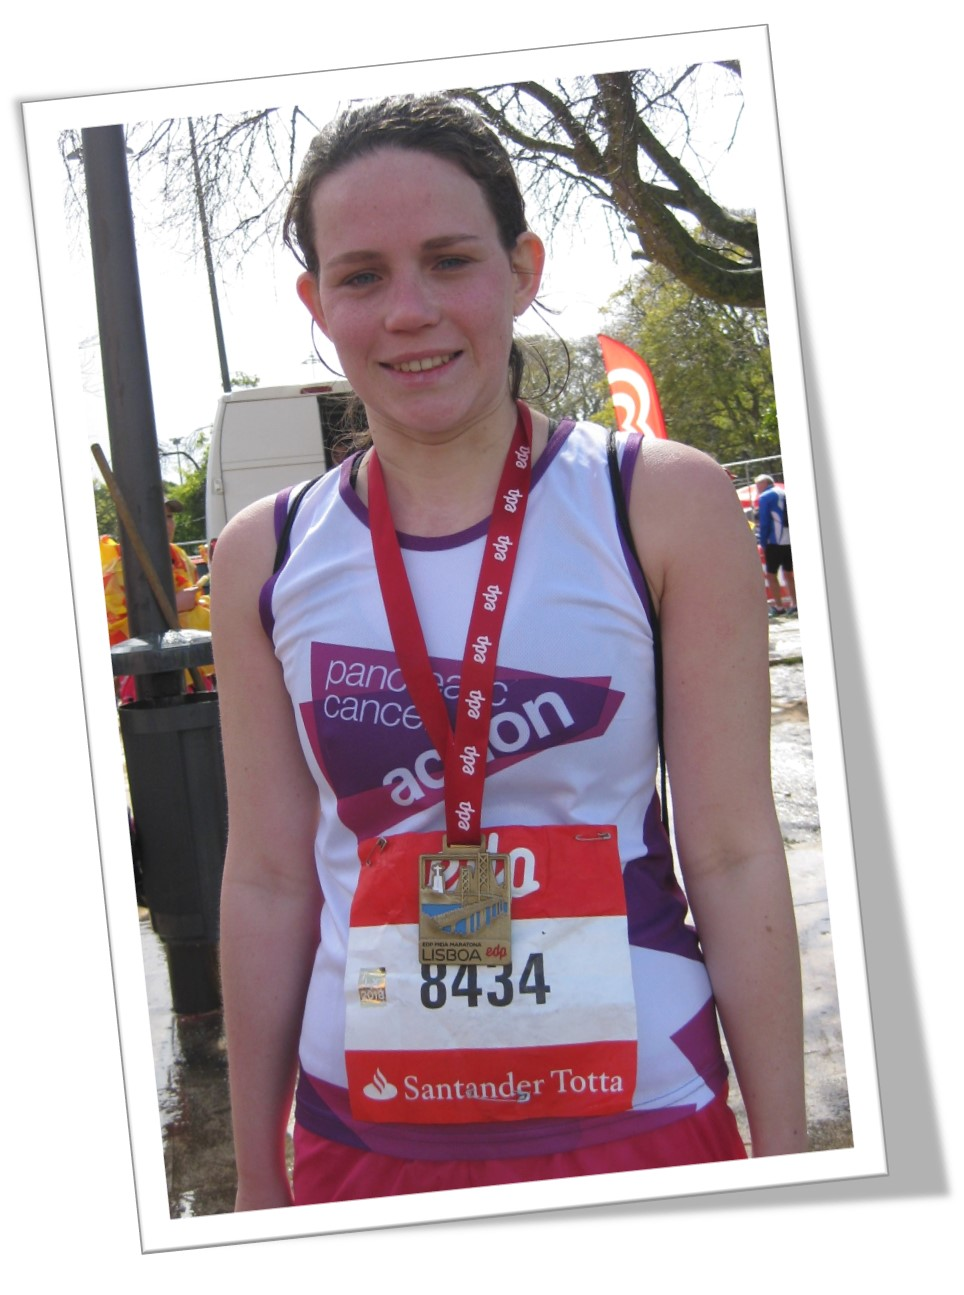 A picture of Sarah Dunford, who will be running the London Marathon for Pancreatic Cancer Action